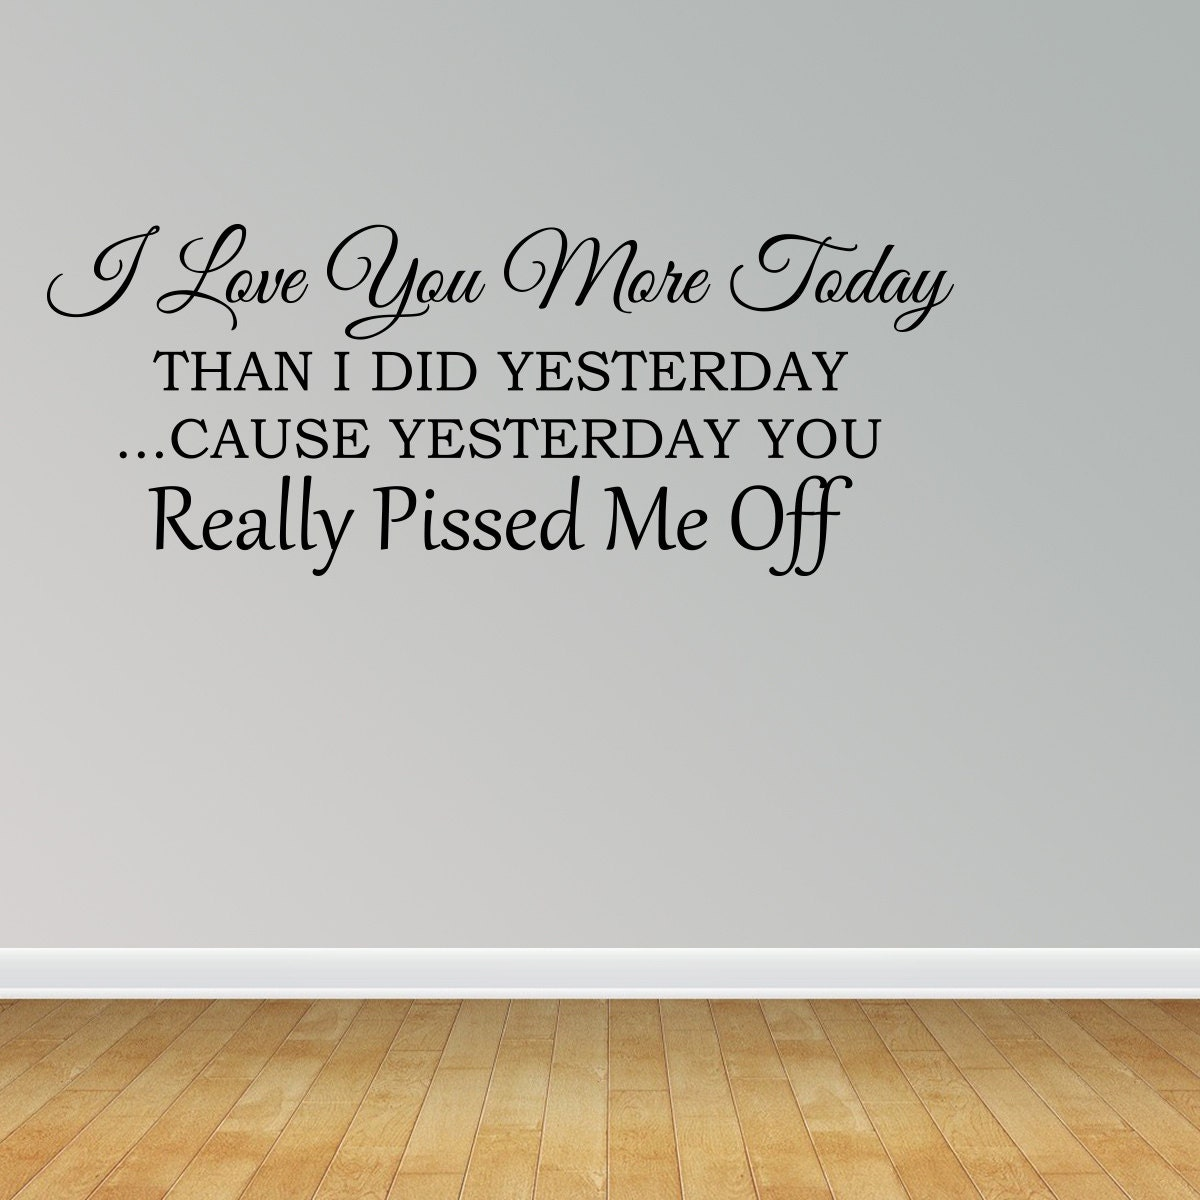 I Love You More Today Than Yesterday: Wall Decal I Love You More Today Than I Did Yesterday Because